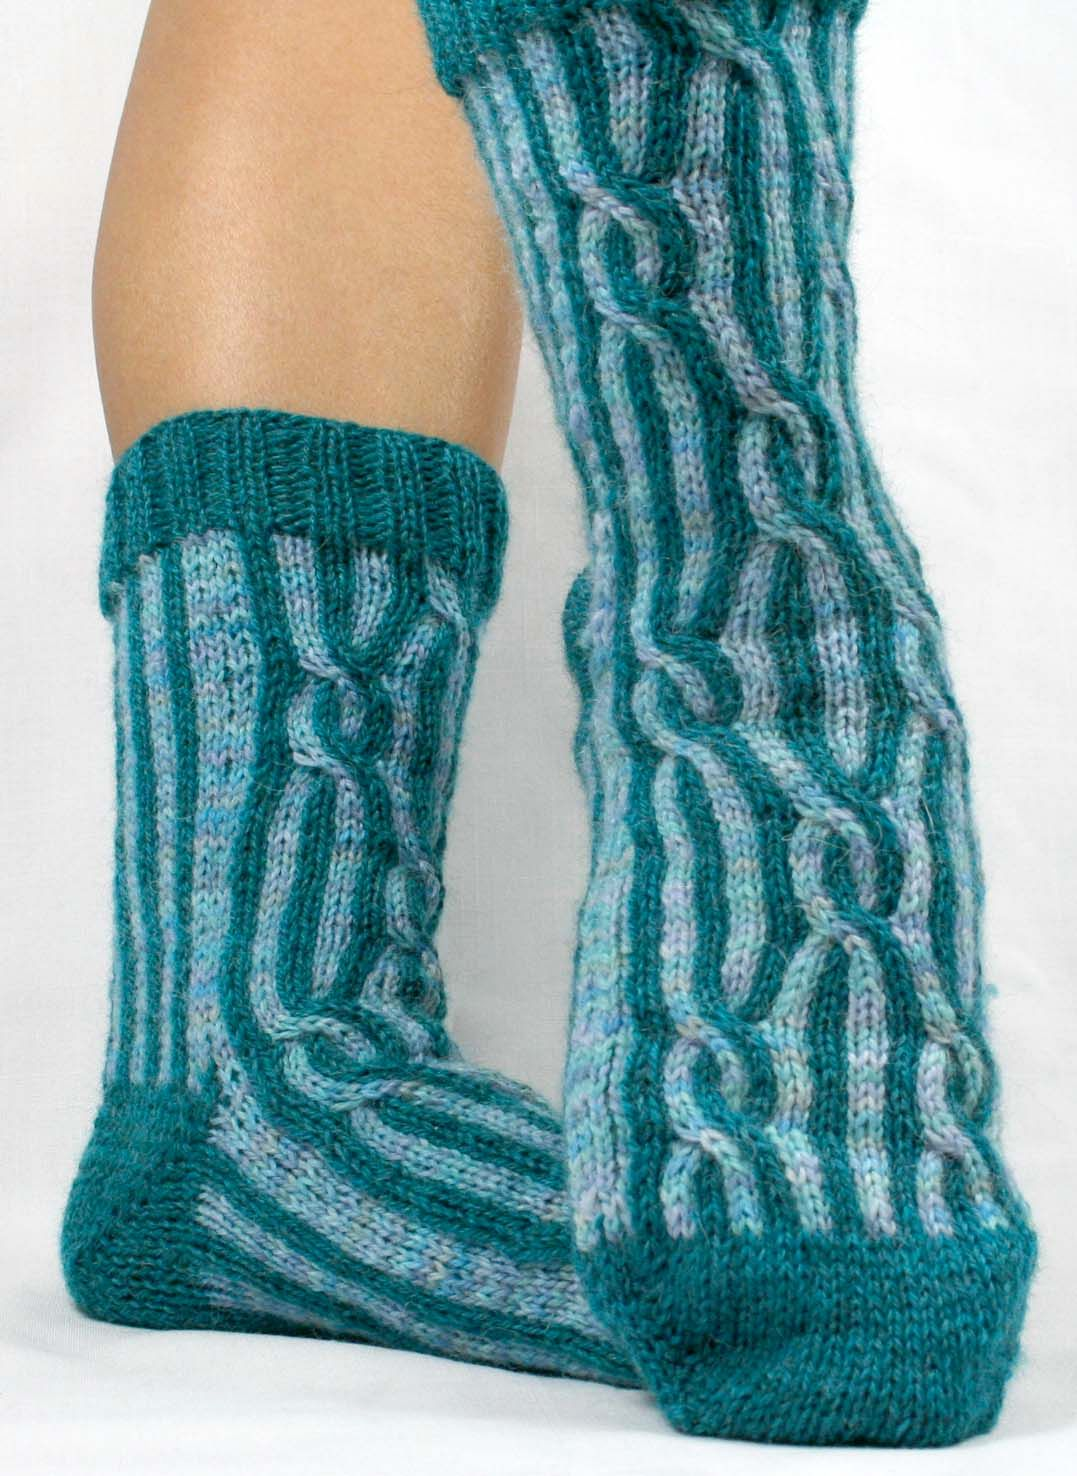 Crazy Crazy Eights Socks Pattern Knitting Patterns And Crochet